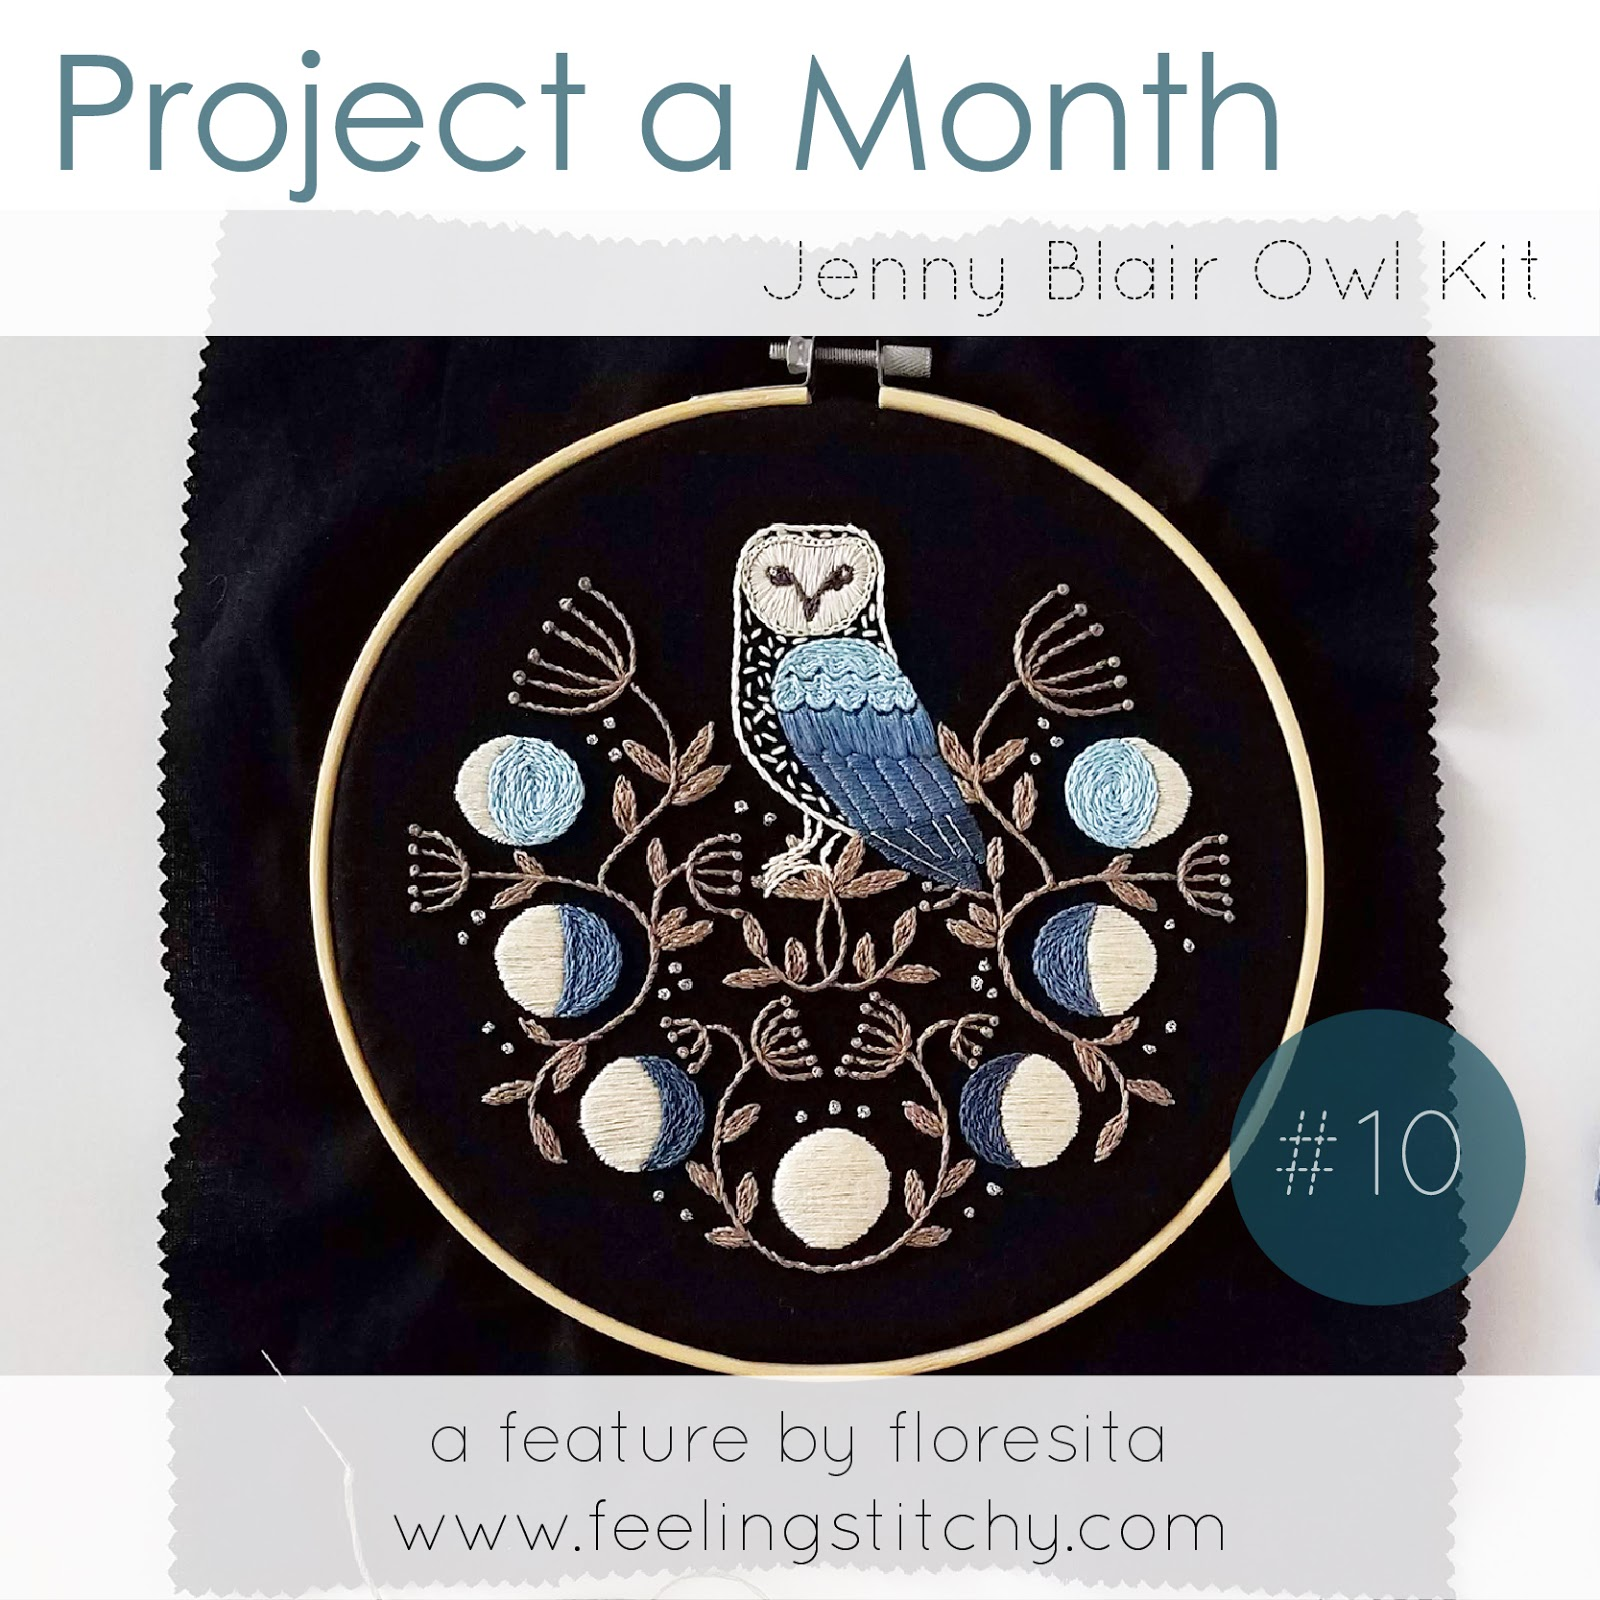 Project a Month October Jenny Blair Owl Embroidery Kit as Featured by floresita on Feeling Stitchy